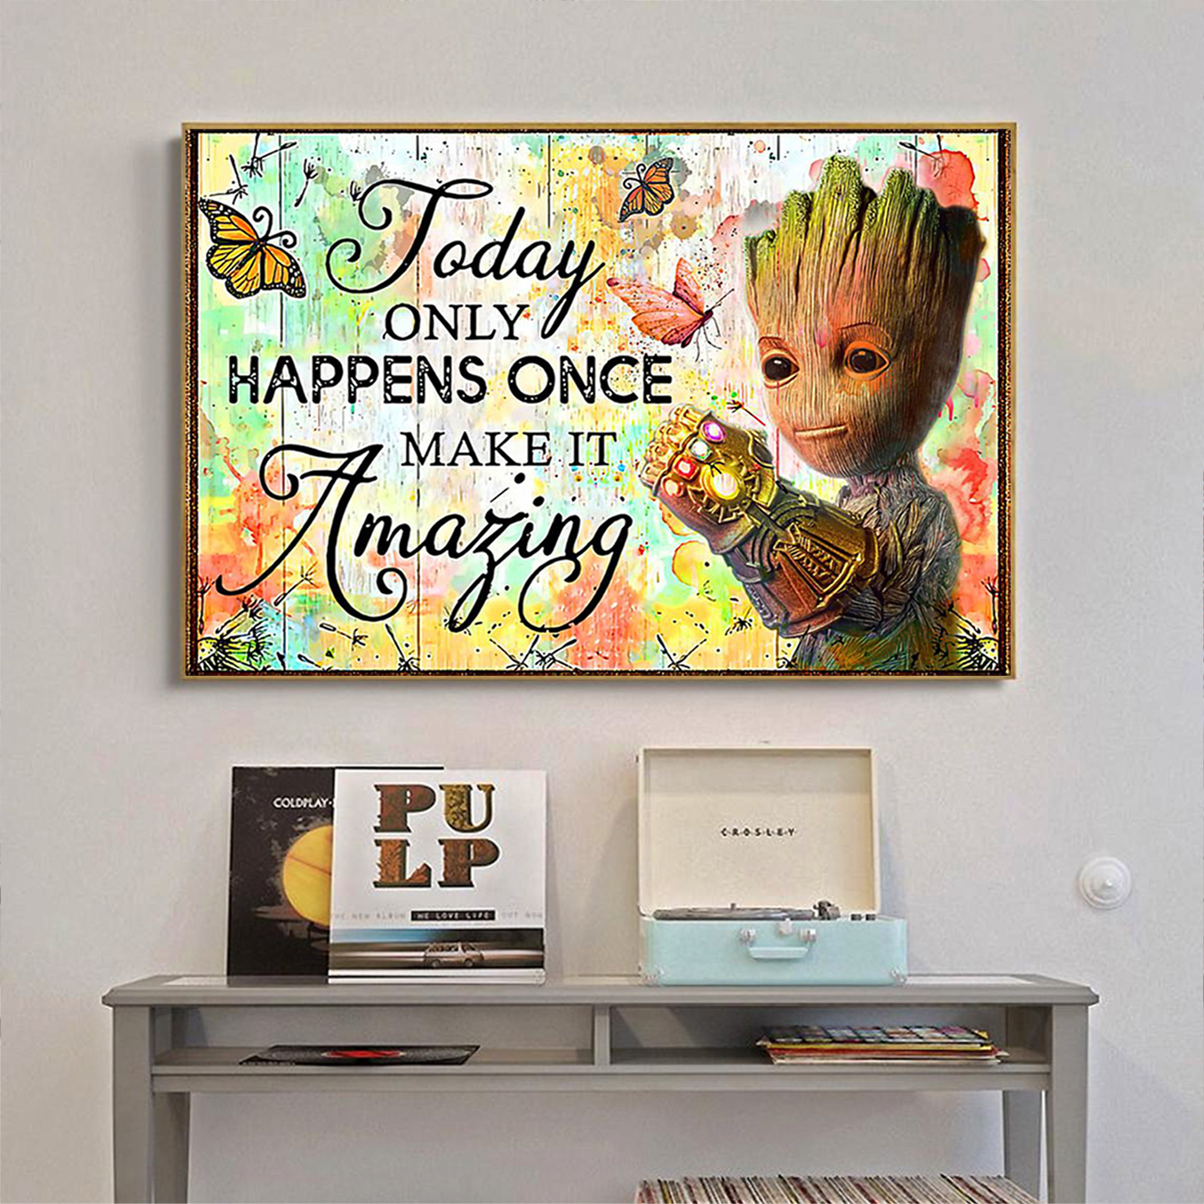 Groot today only happens once make it amazing poster A3